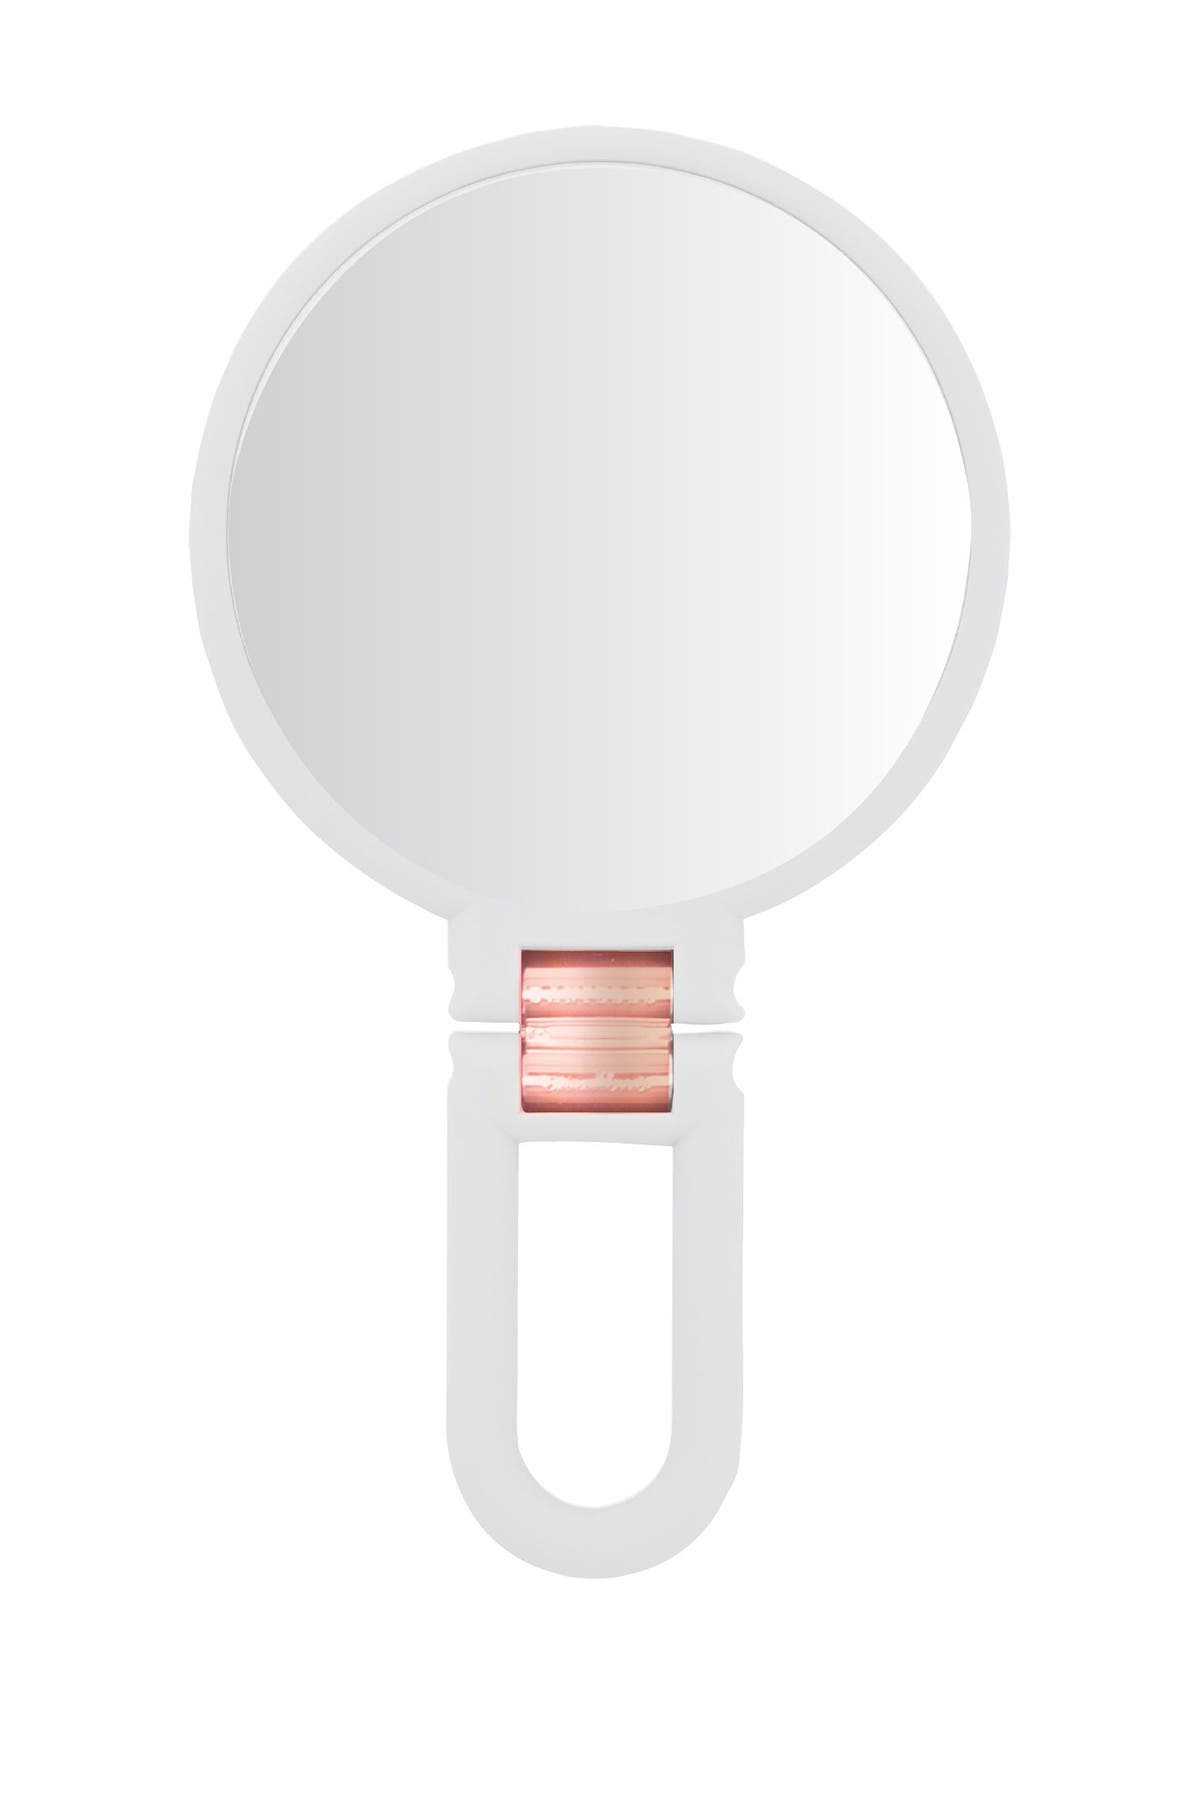 UPPER CANADA SOAPS Danielle Soft Touch Hand Held Foldable Mirror - White w/ Rose Gold Metal